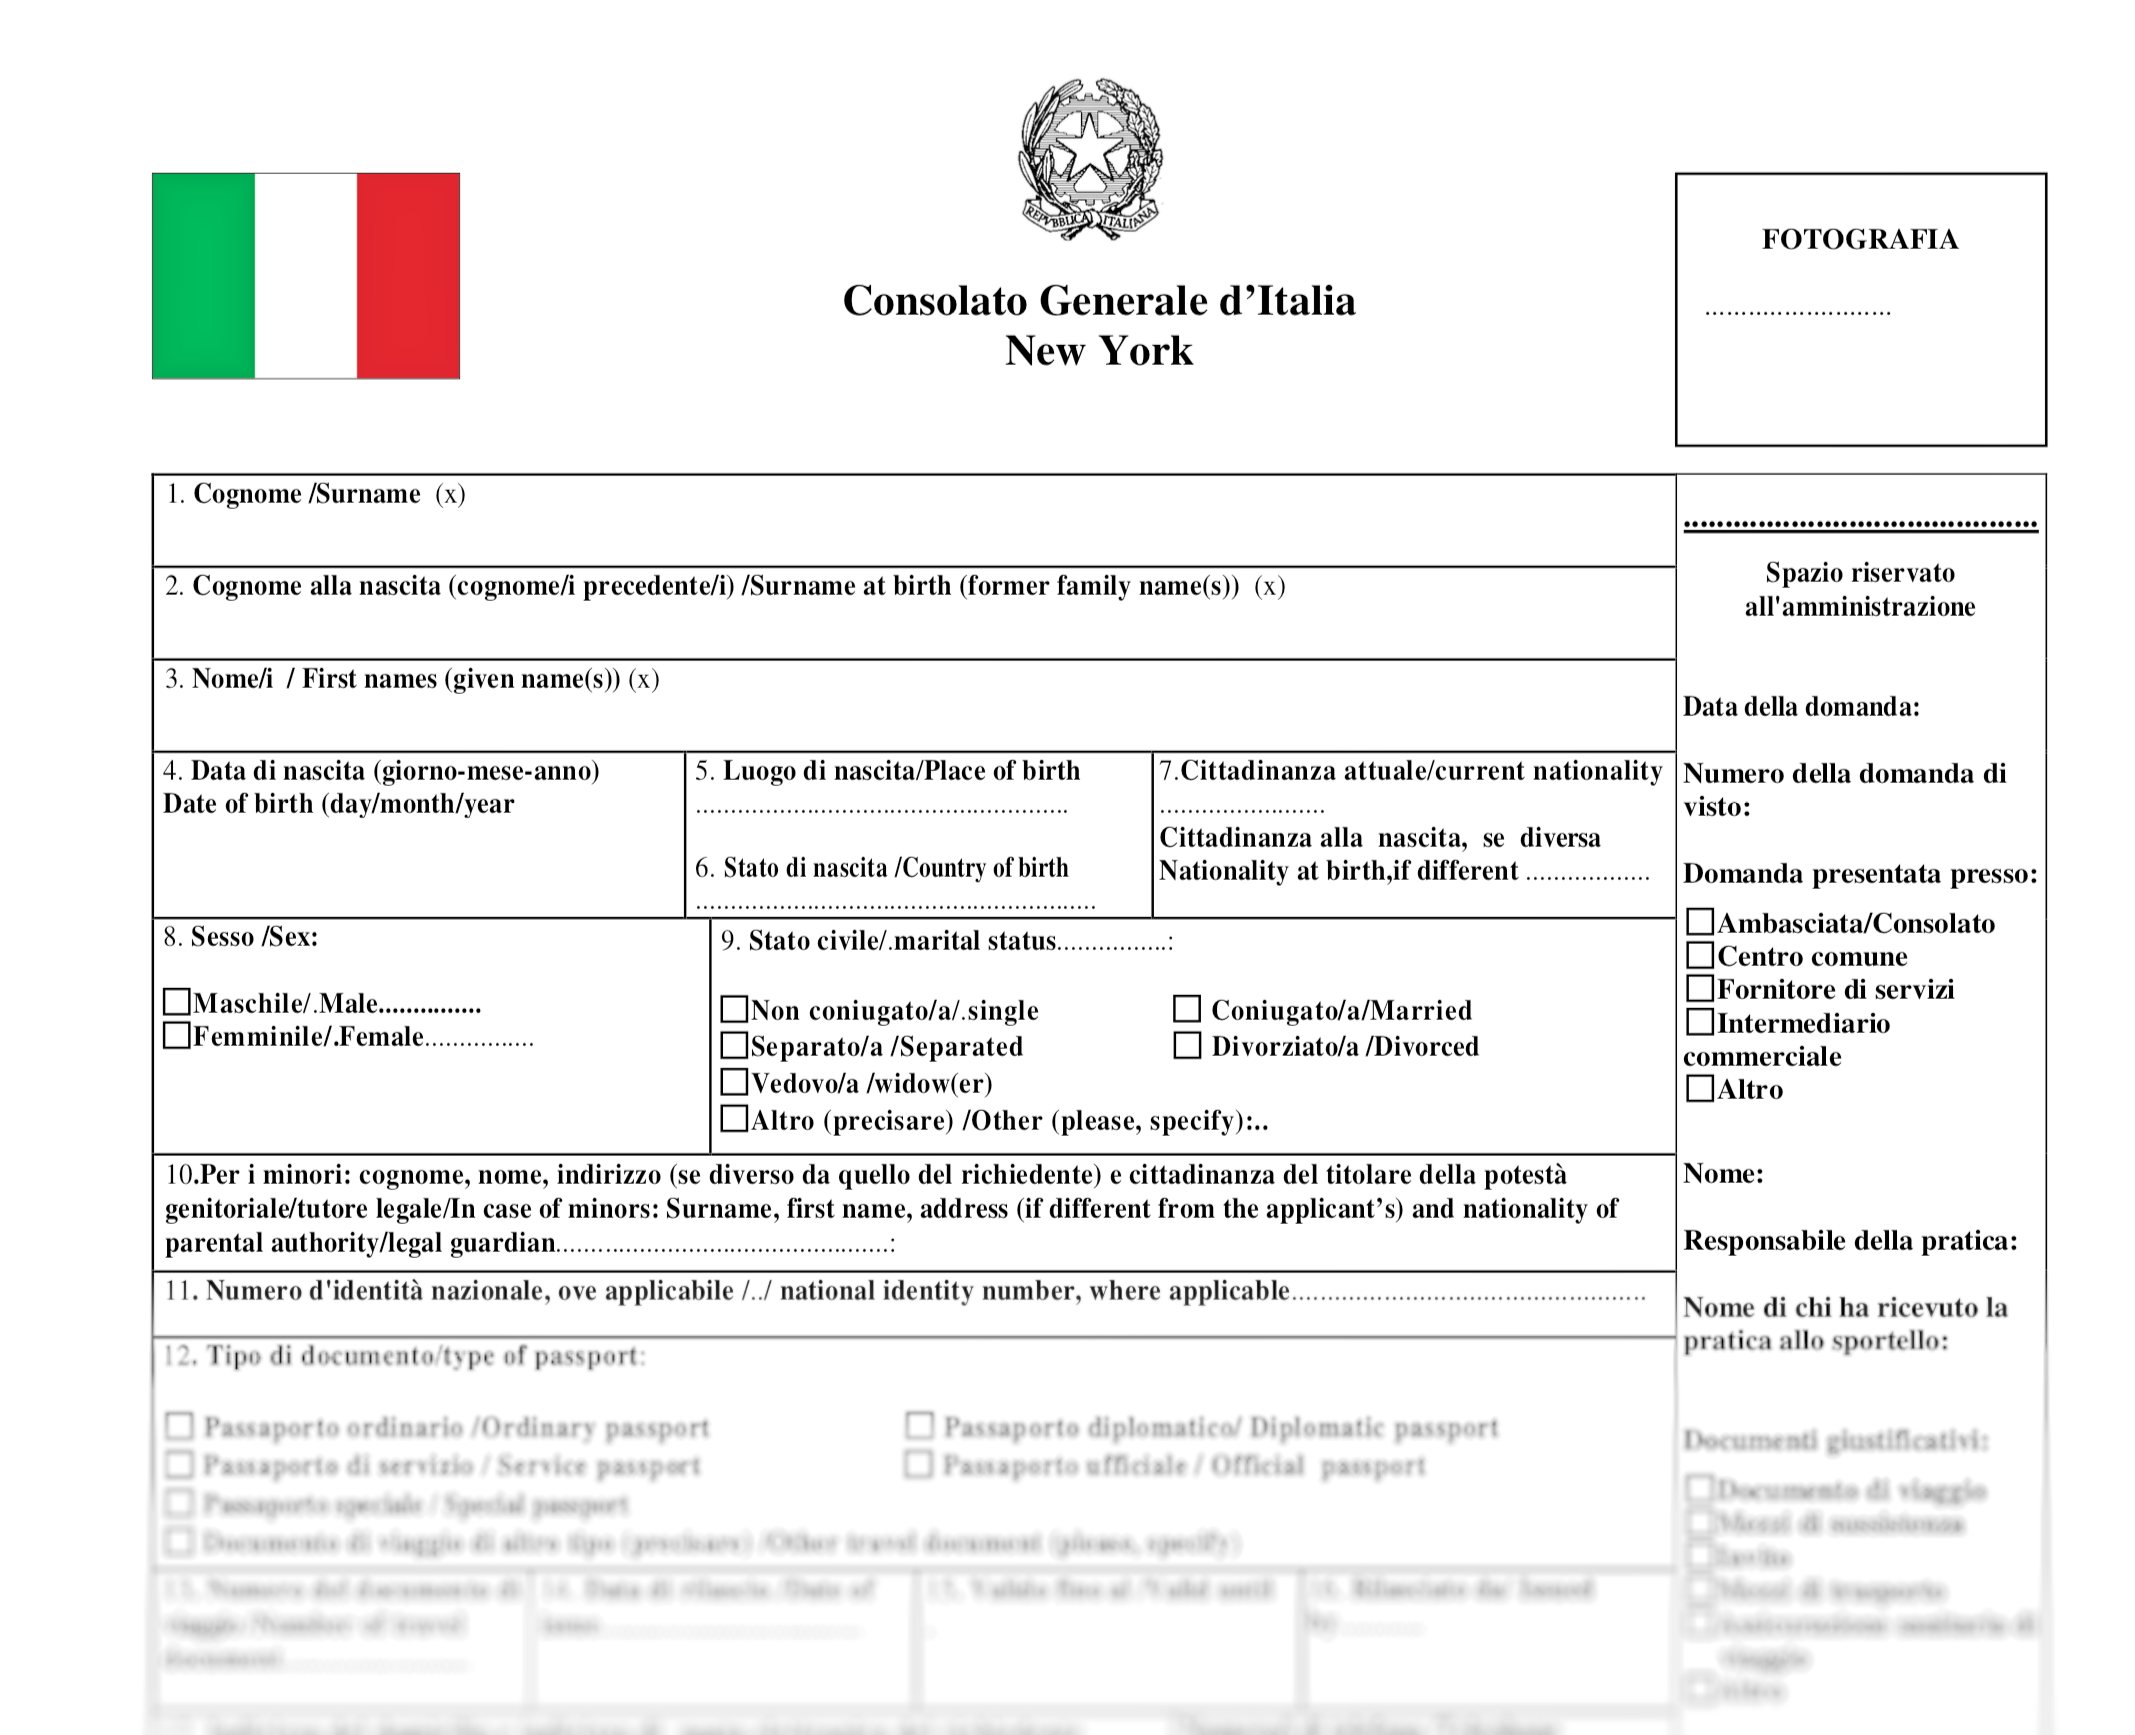 An example of the 10-pages paperwork provided by the Italian consulate